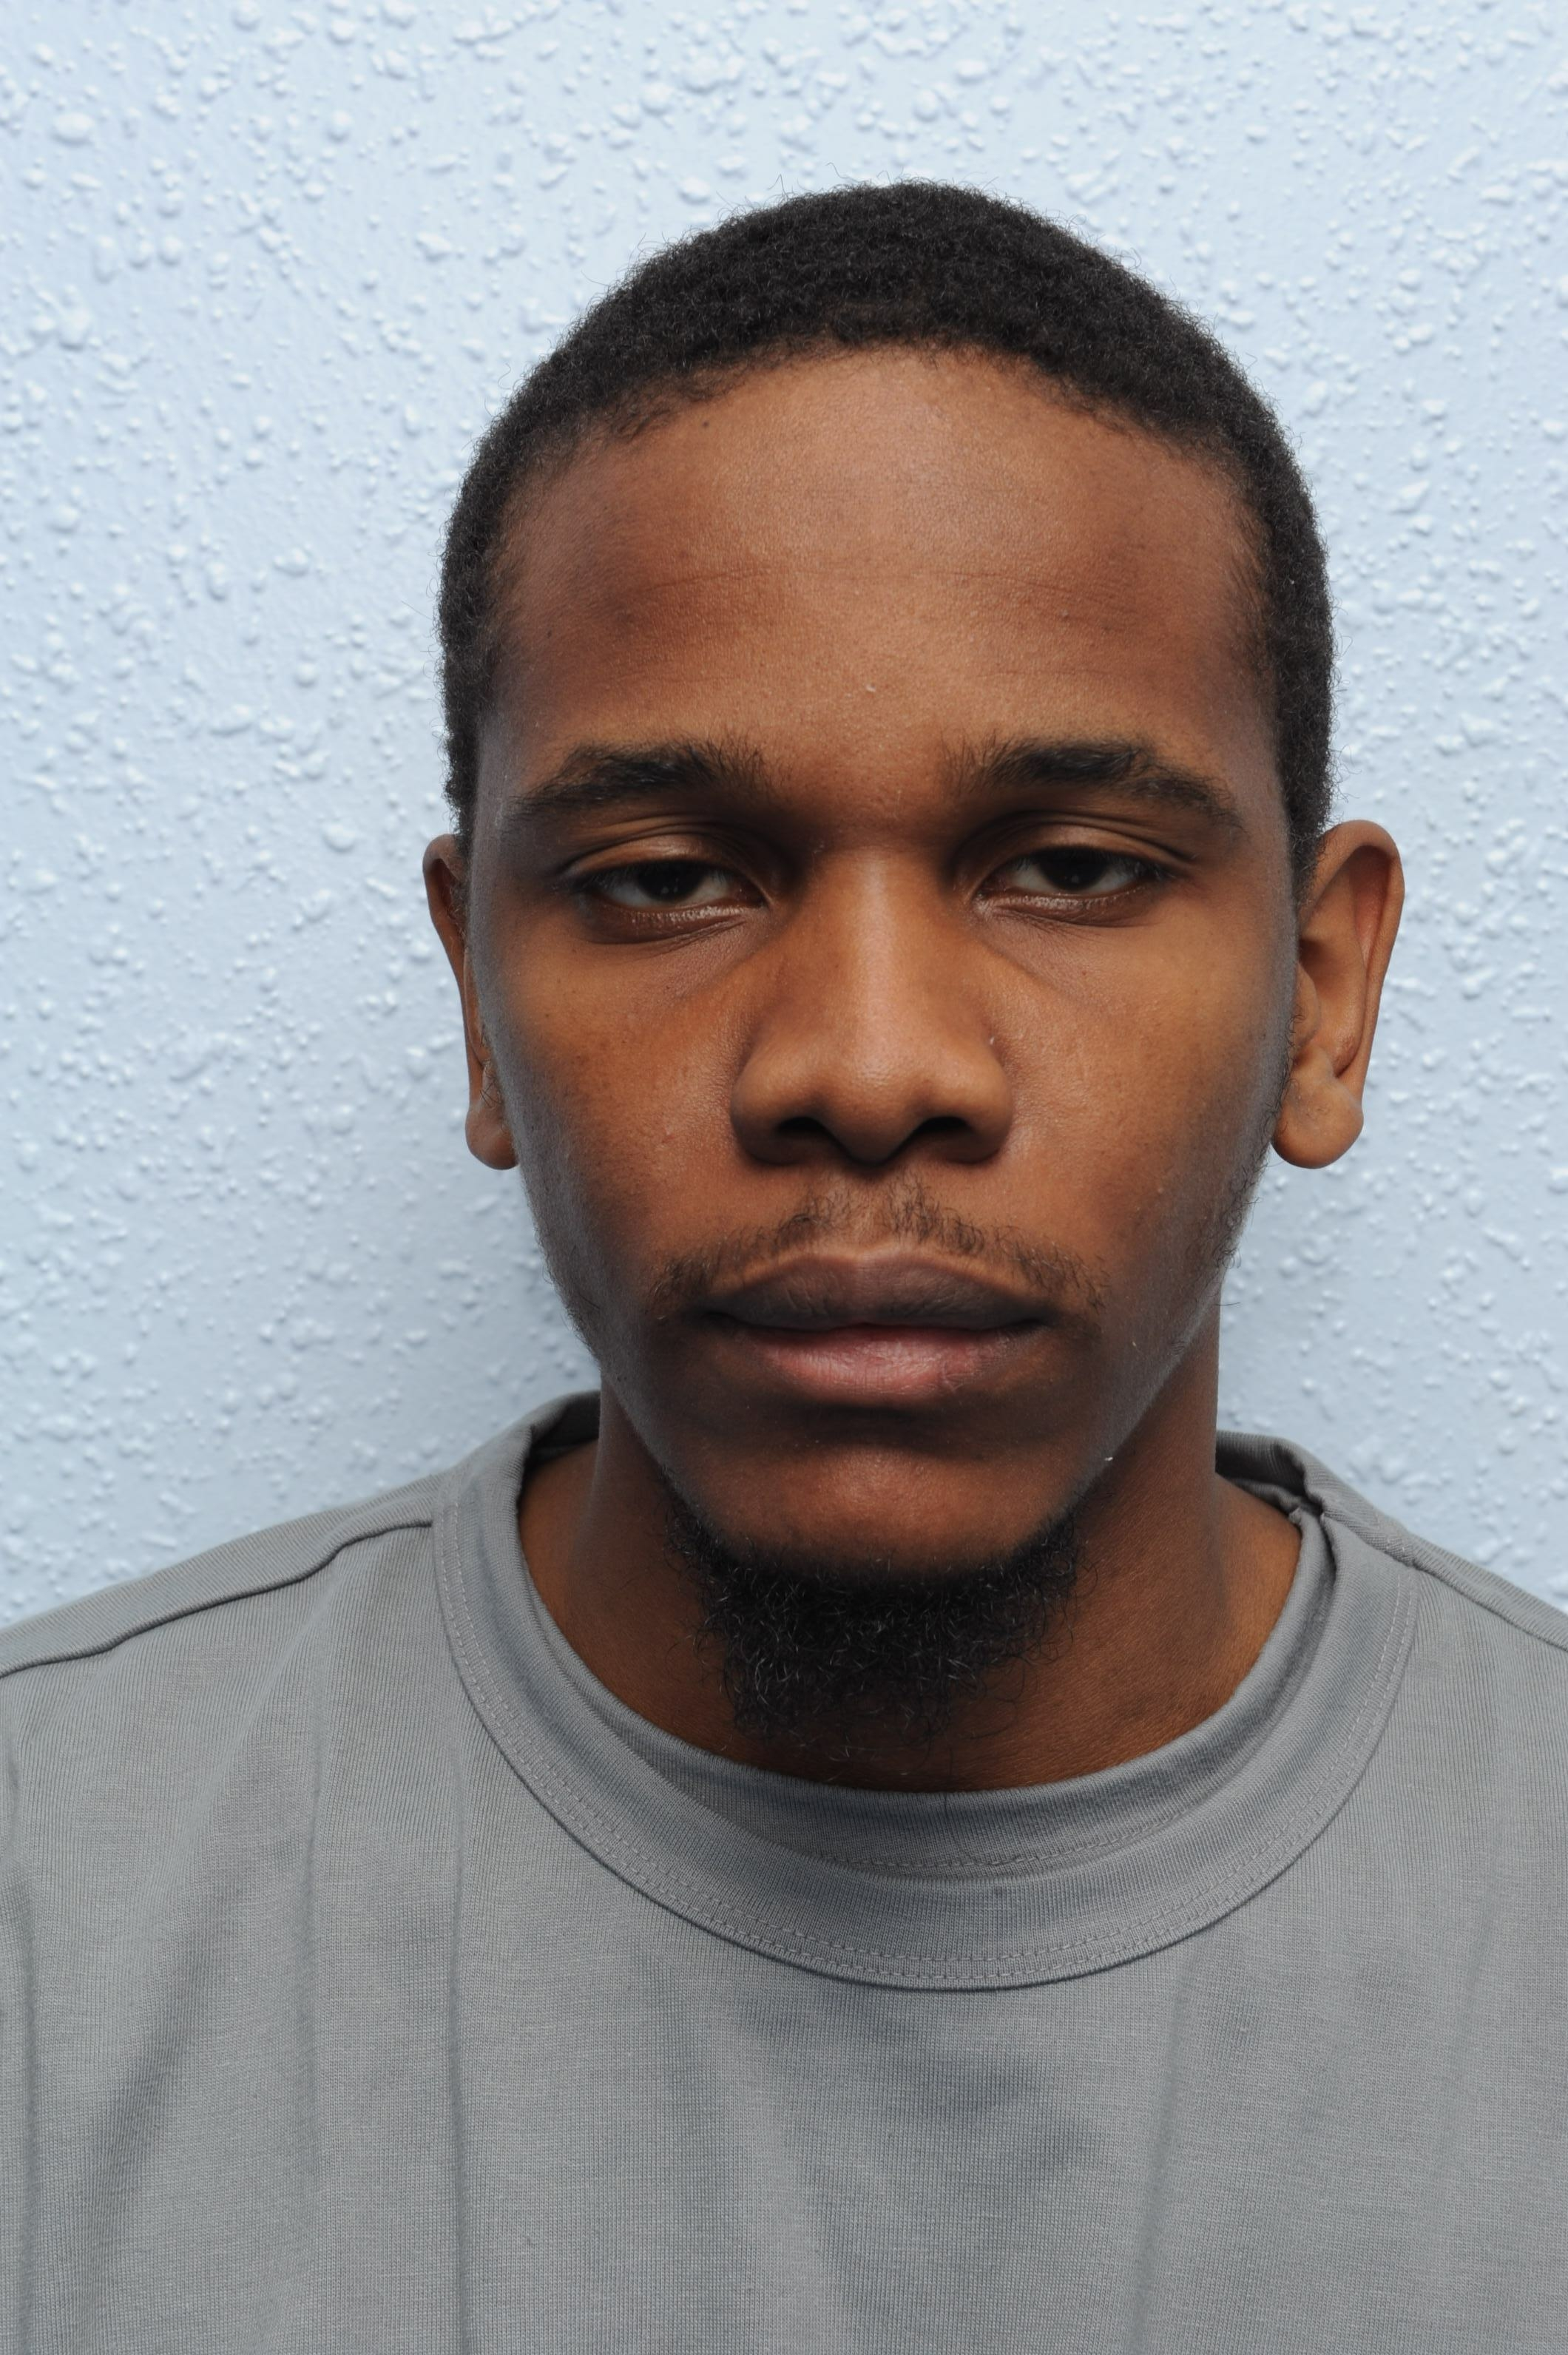 Friend of Lee Rigby killer jailed for terror offences